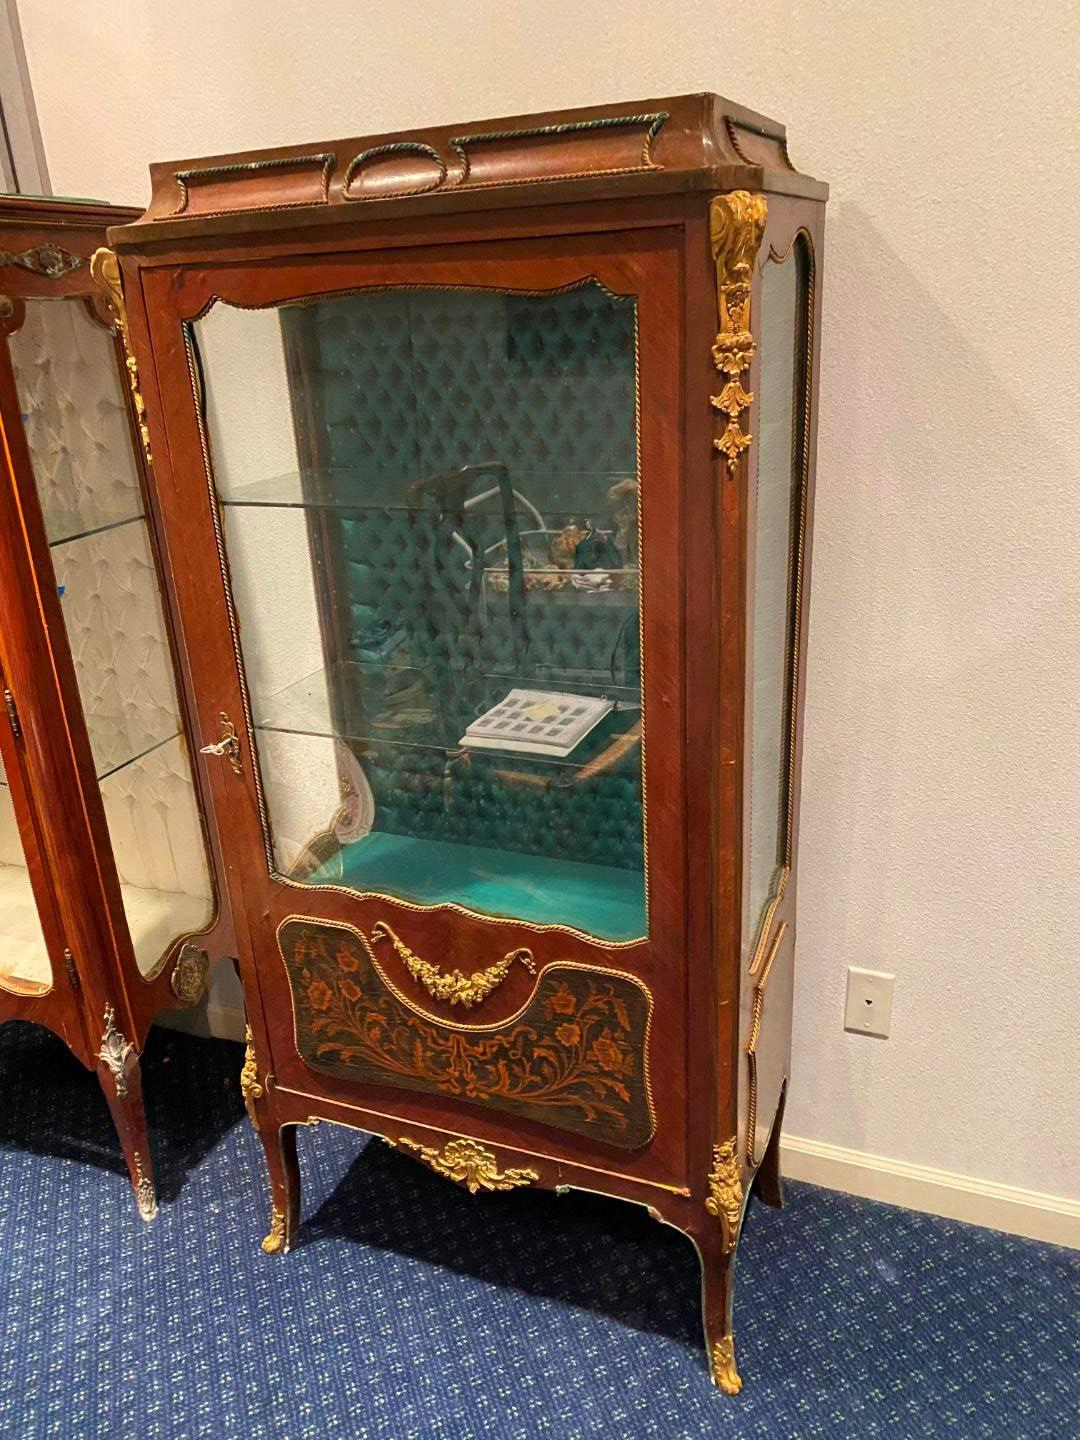 Lot # 124 - Elegant Antique French Louis XV Style Curio Cabinet w/Tuft Backing, Glass Shelves & Brass Accents  (main image)